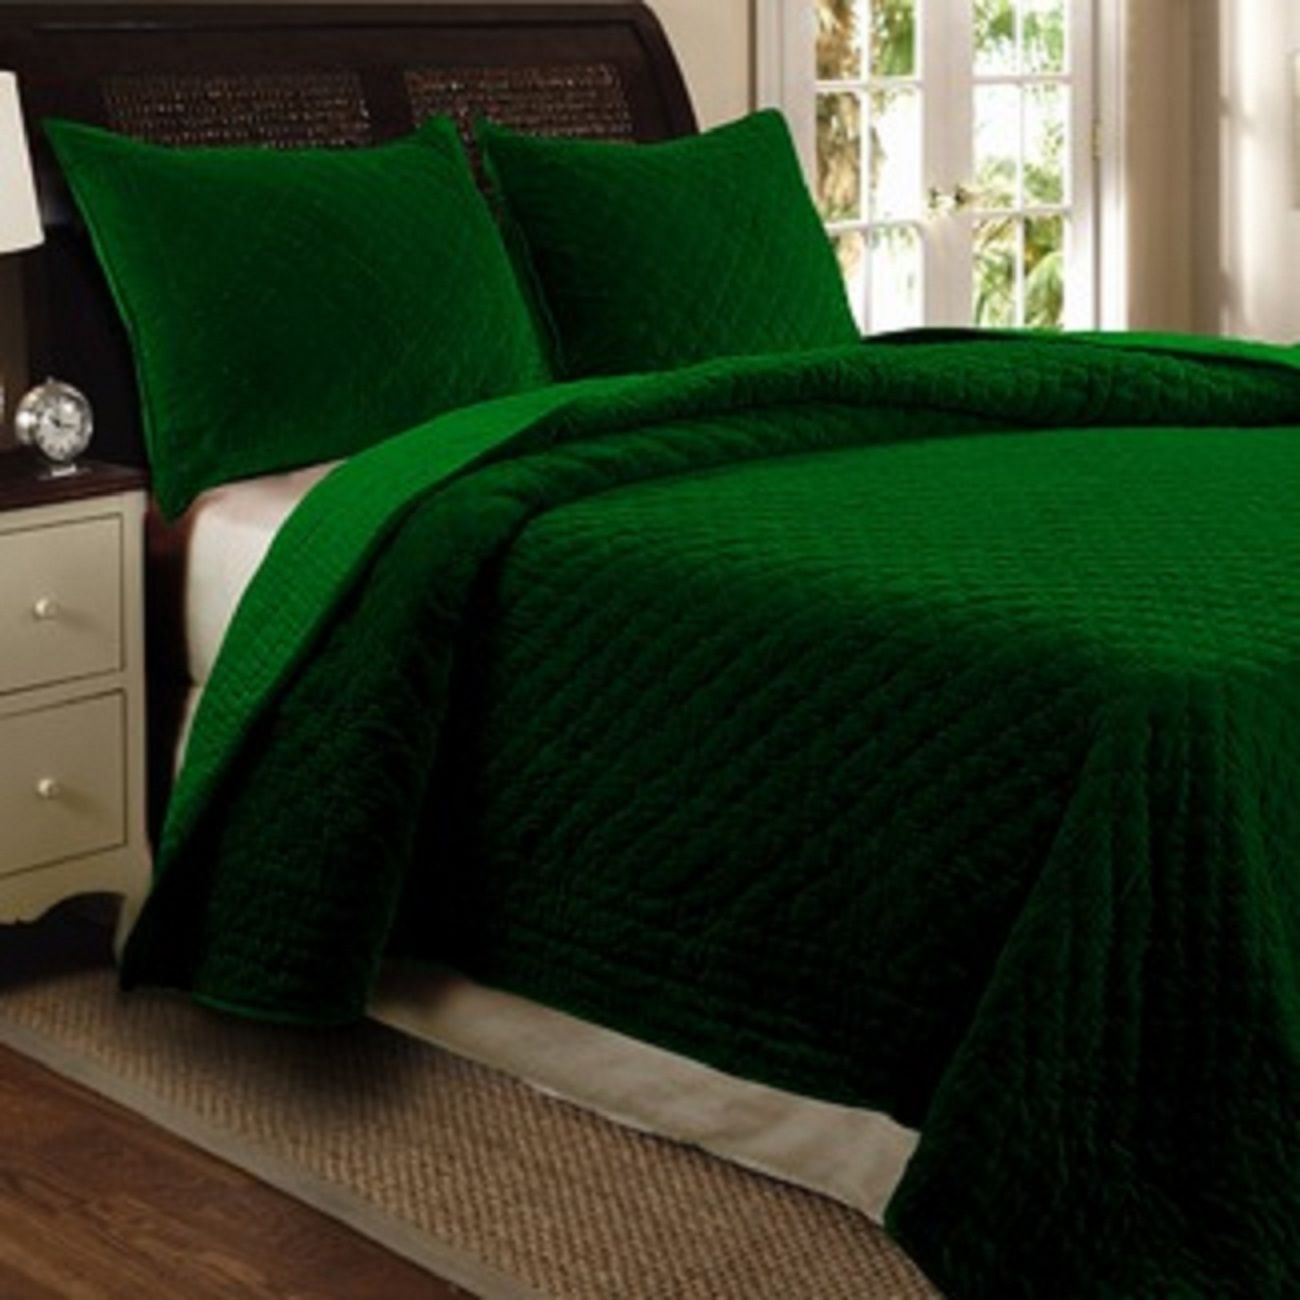 Green bed sheets texture - Luxurious Bohemian Emerald Green Velvet Quilt Bedspread Set New King Size